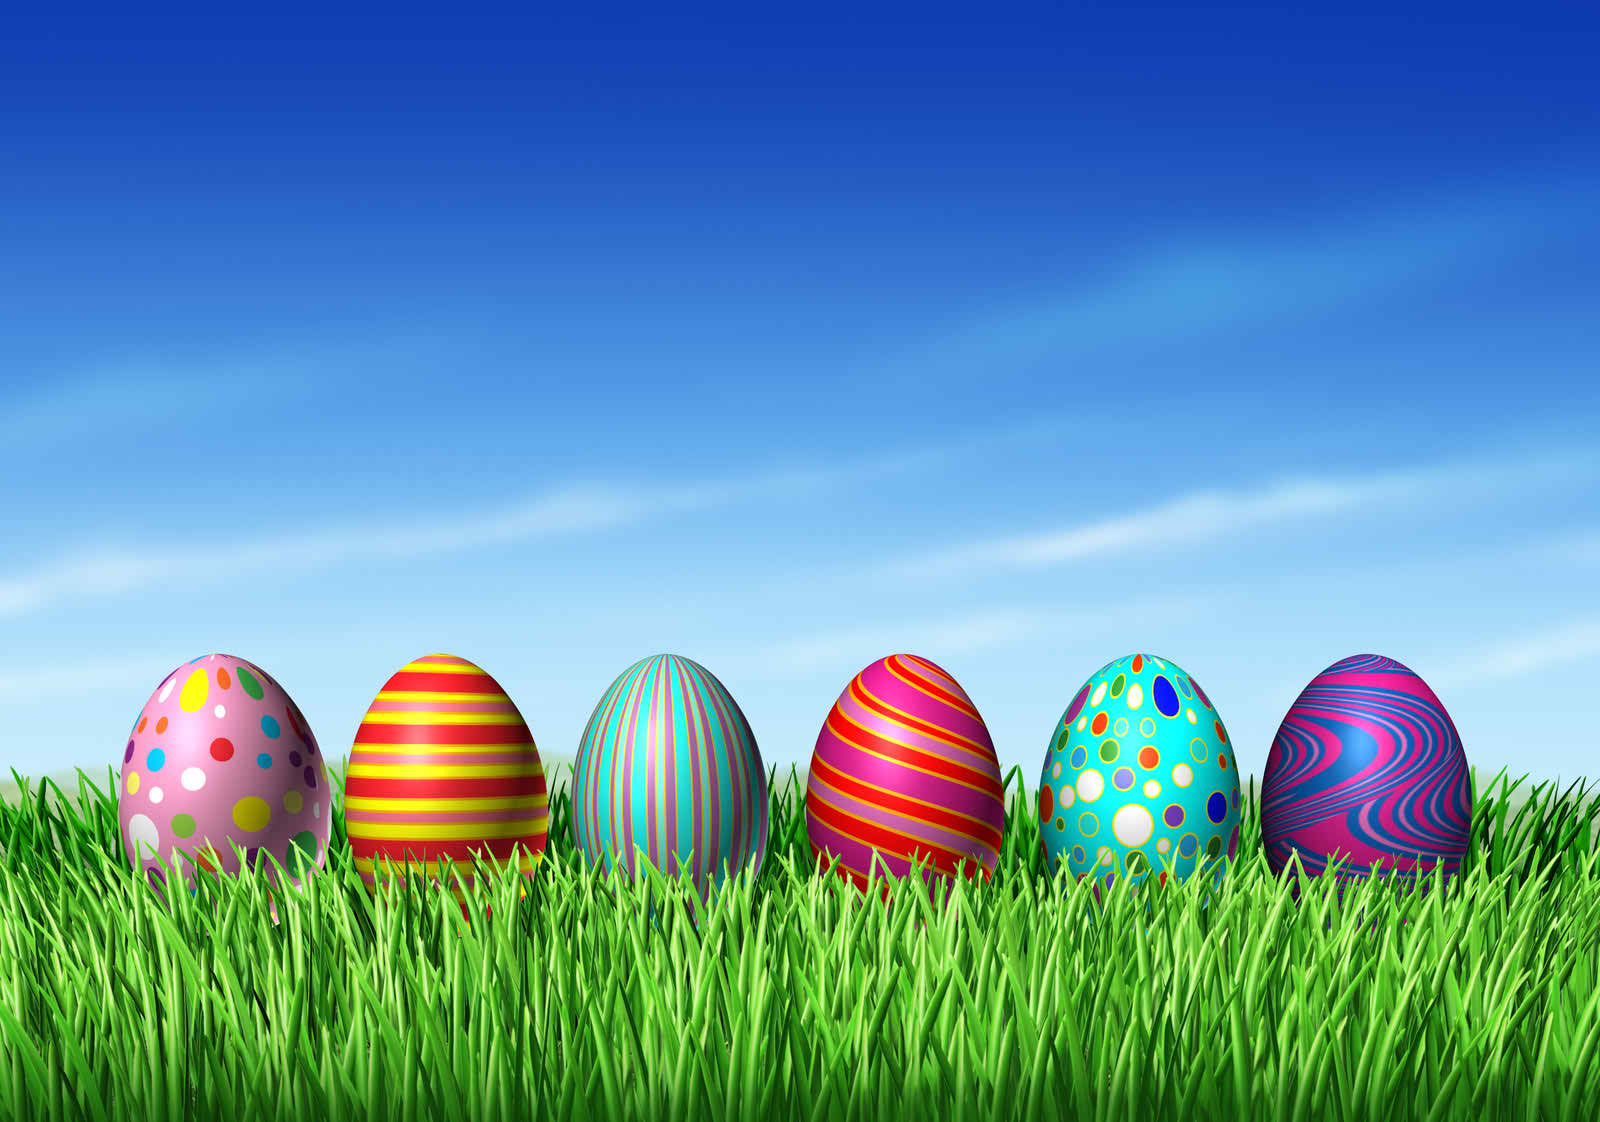 easter wallpapers hd - photo #49